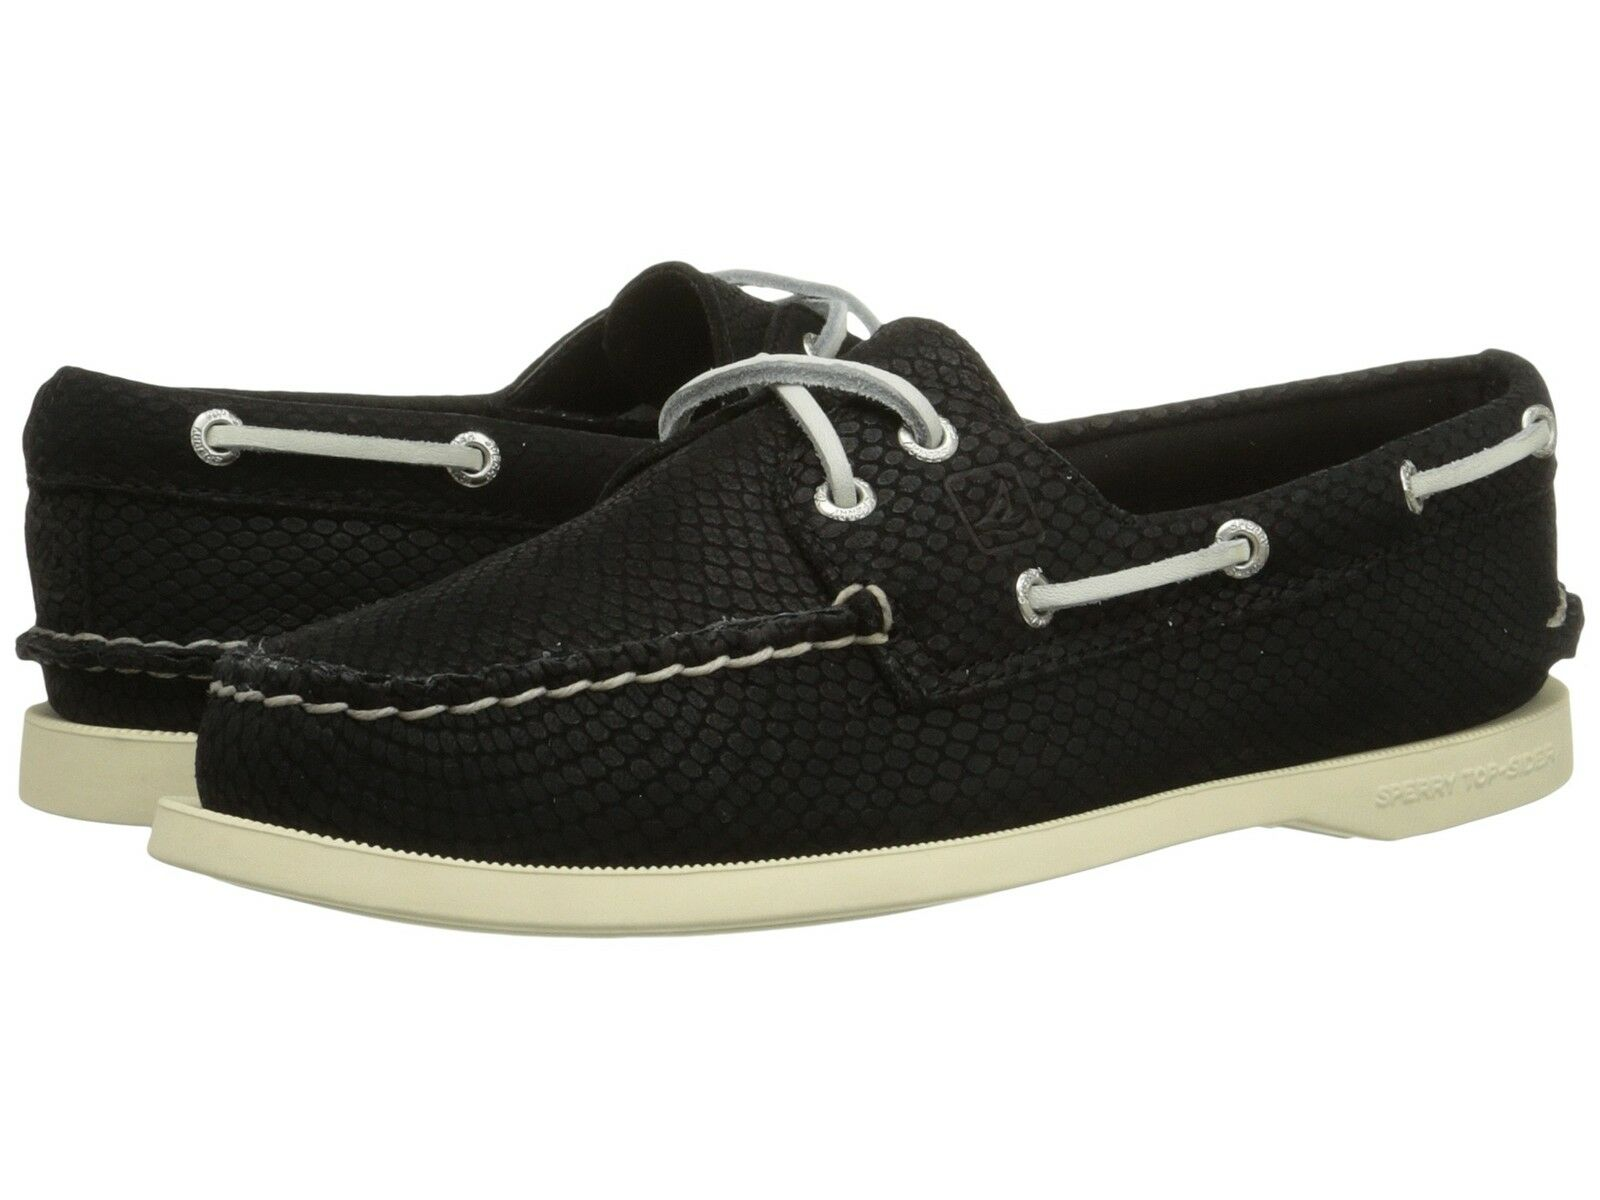 SPERRY TOP SIDER A O 2 EYE PYTHON BLACK WOMENS FLAT BOAT SHOES MULTISIZE